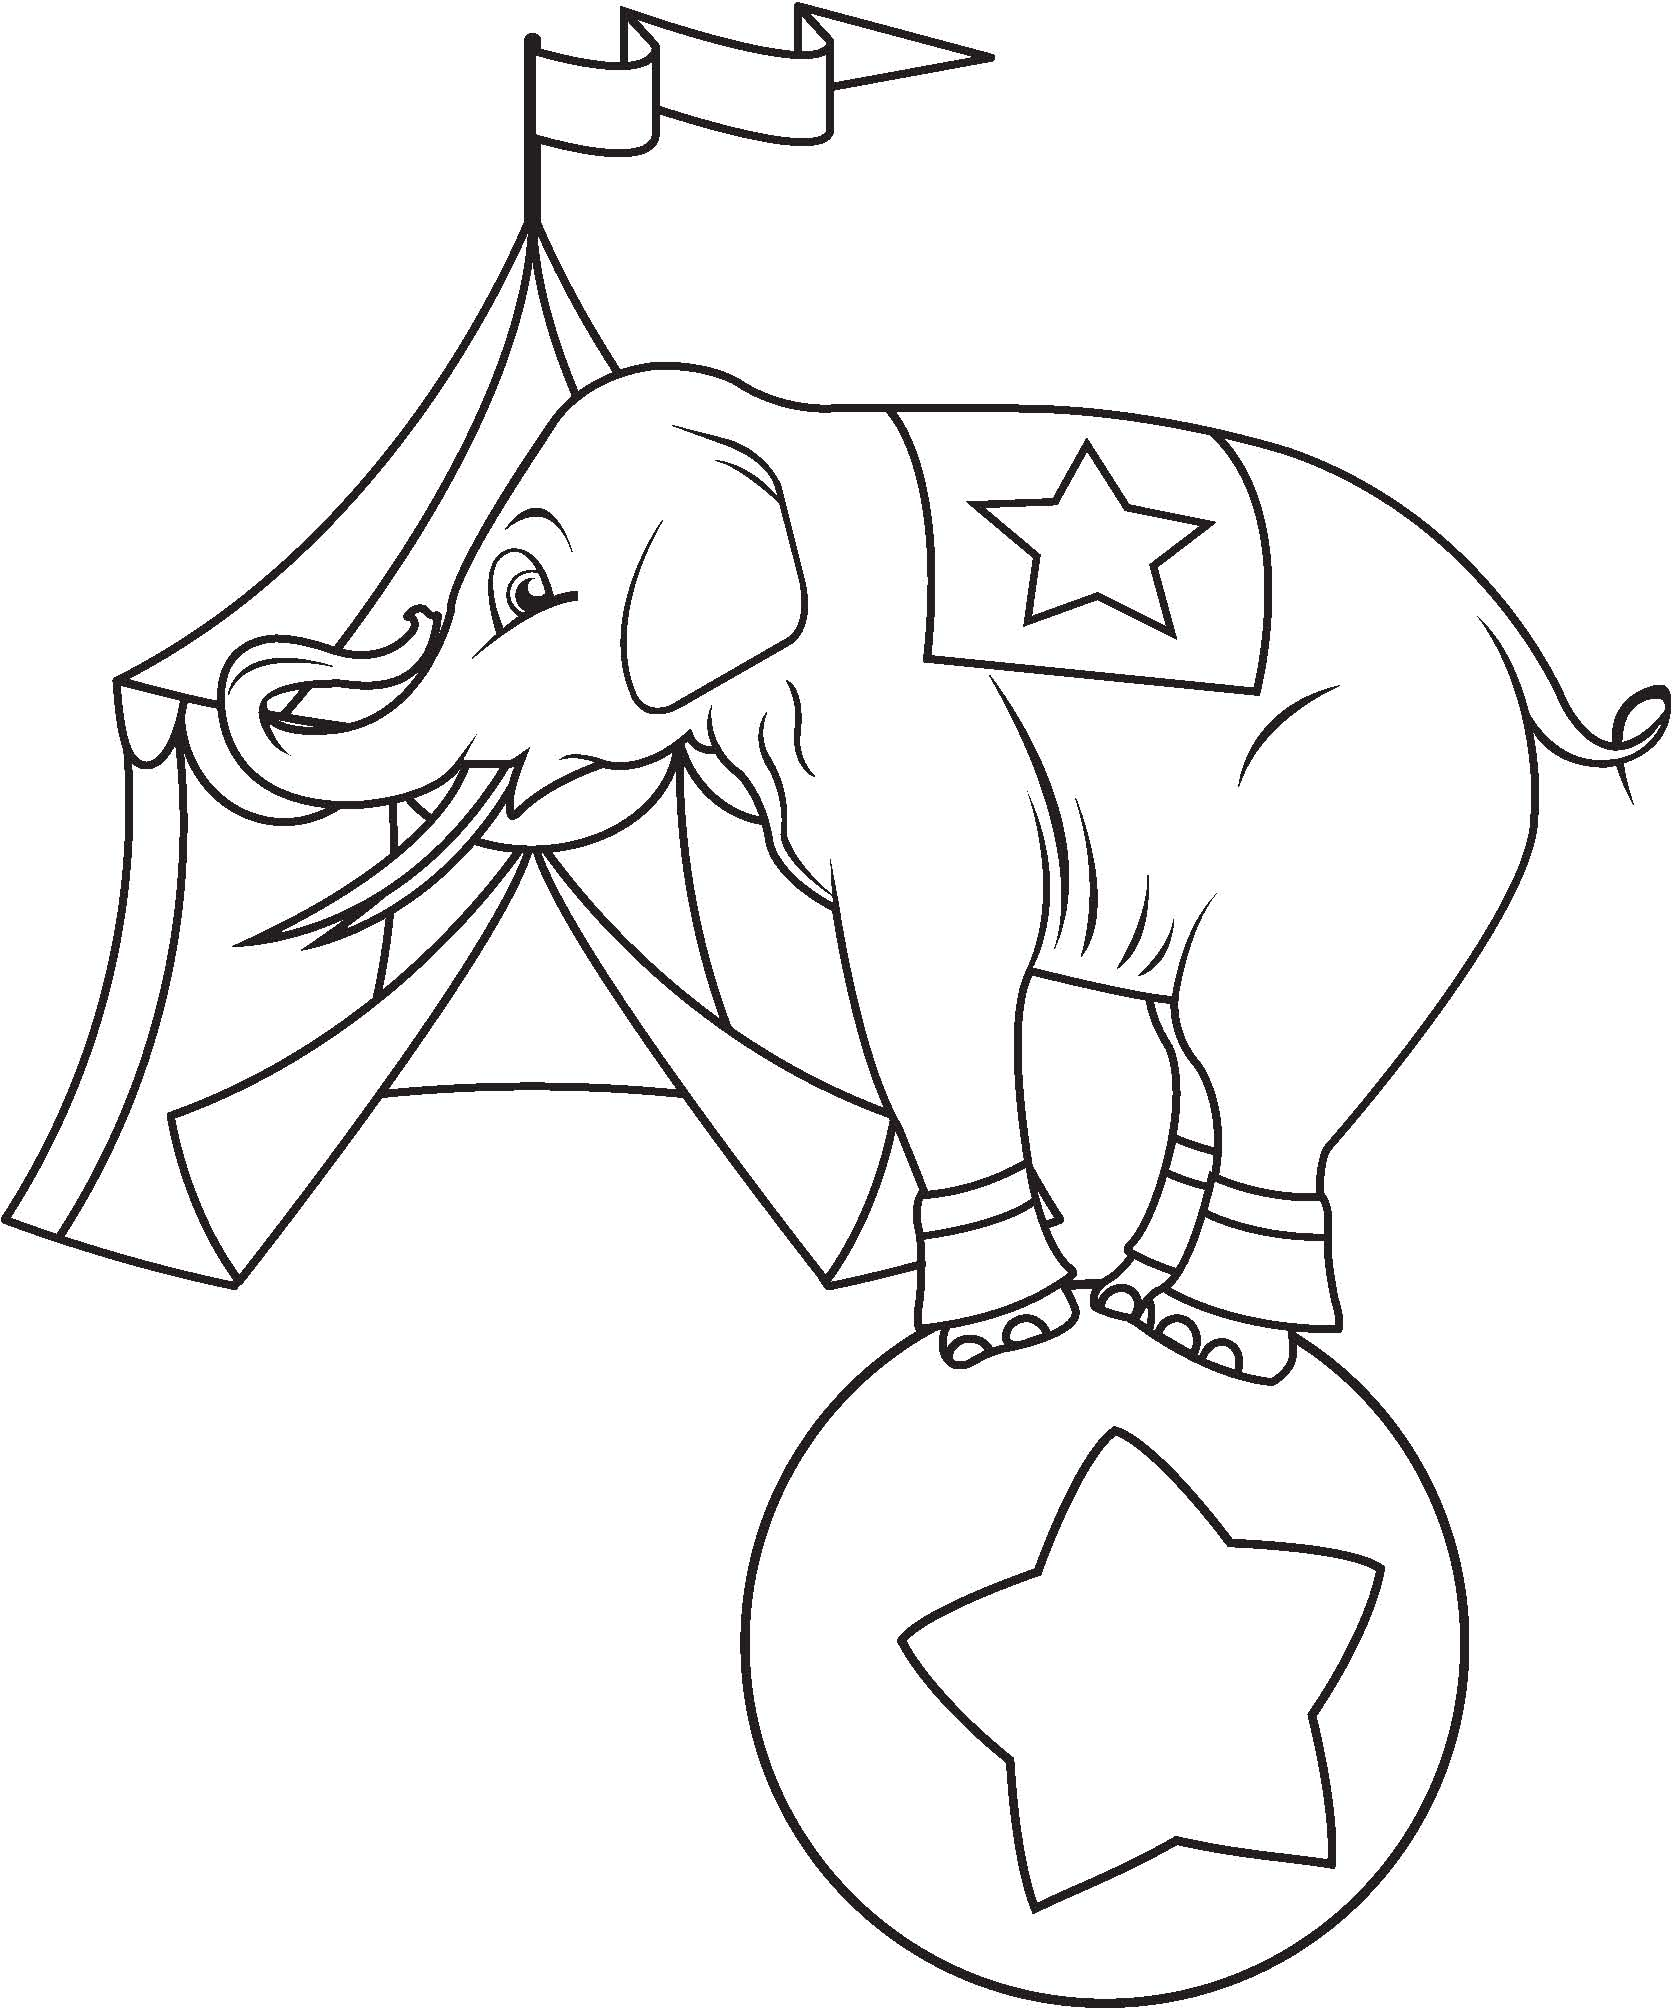 Circus Animal Coloring Sheets